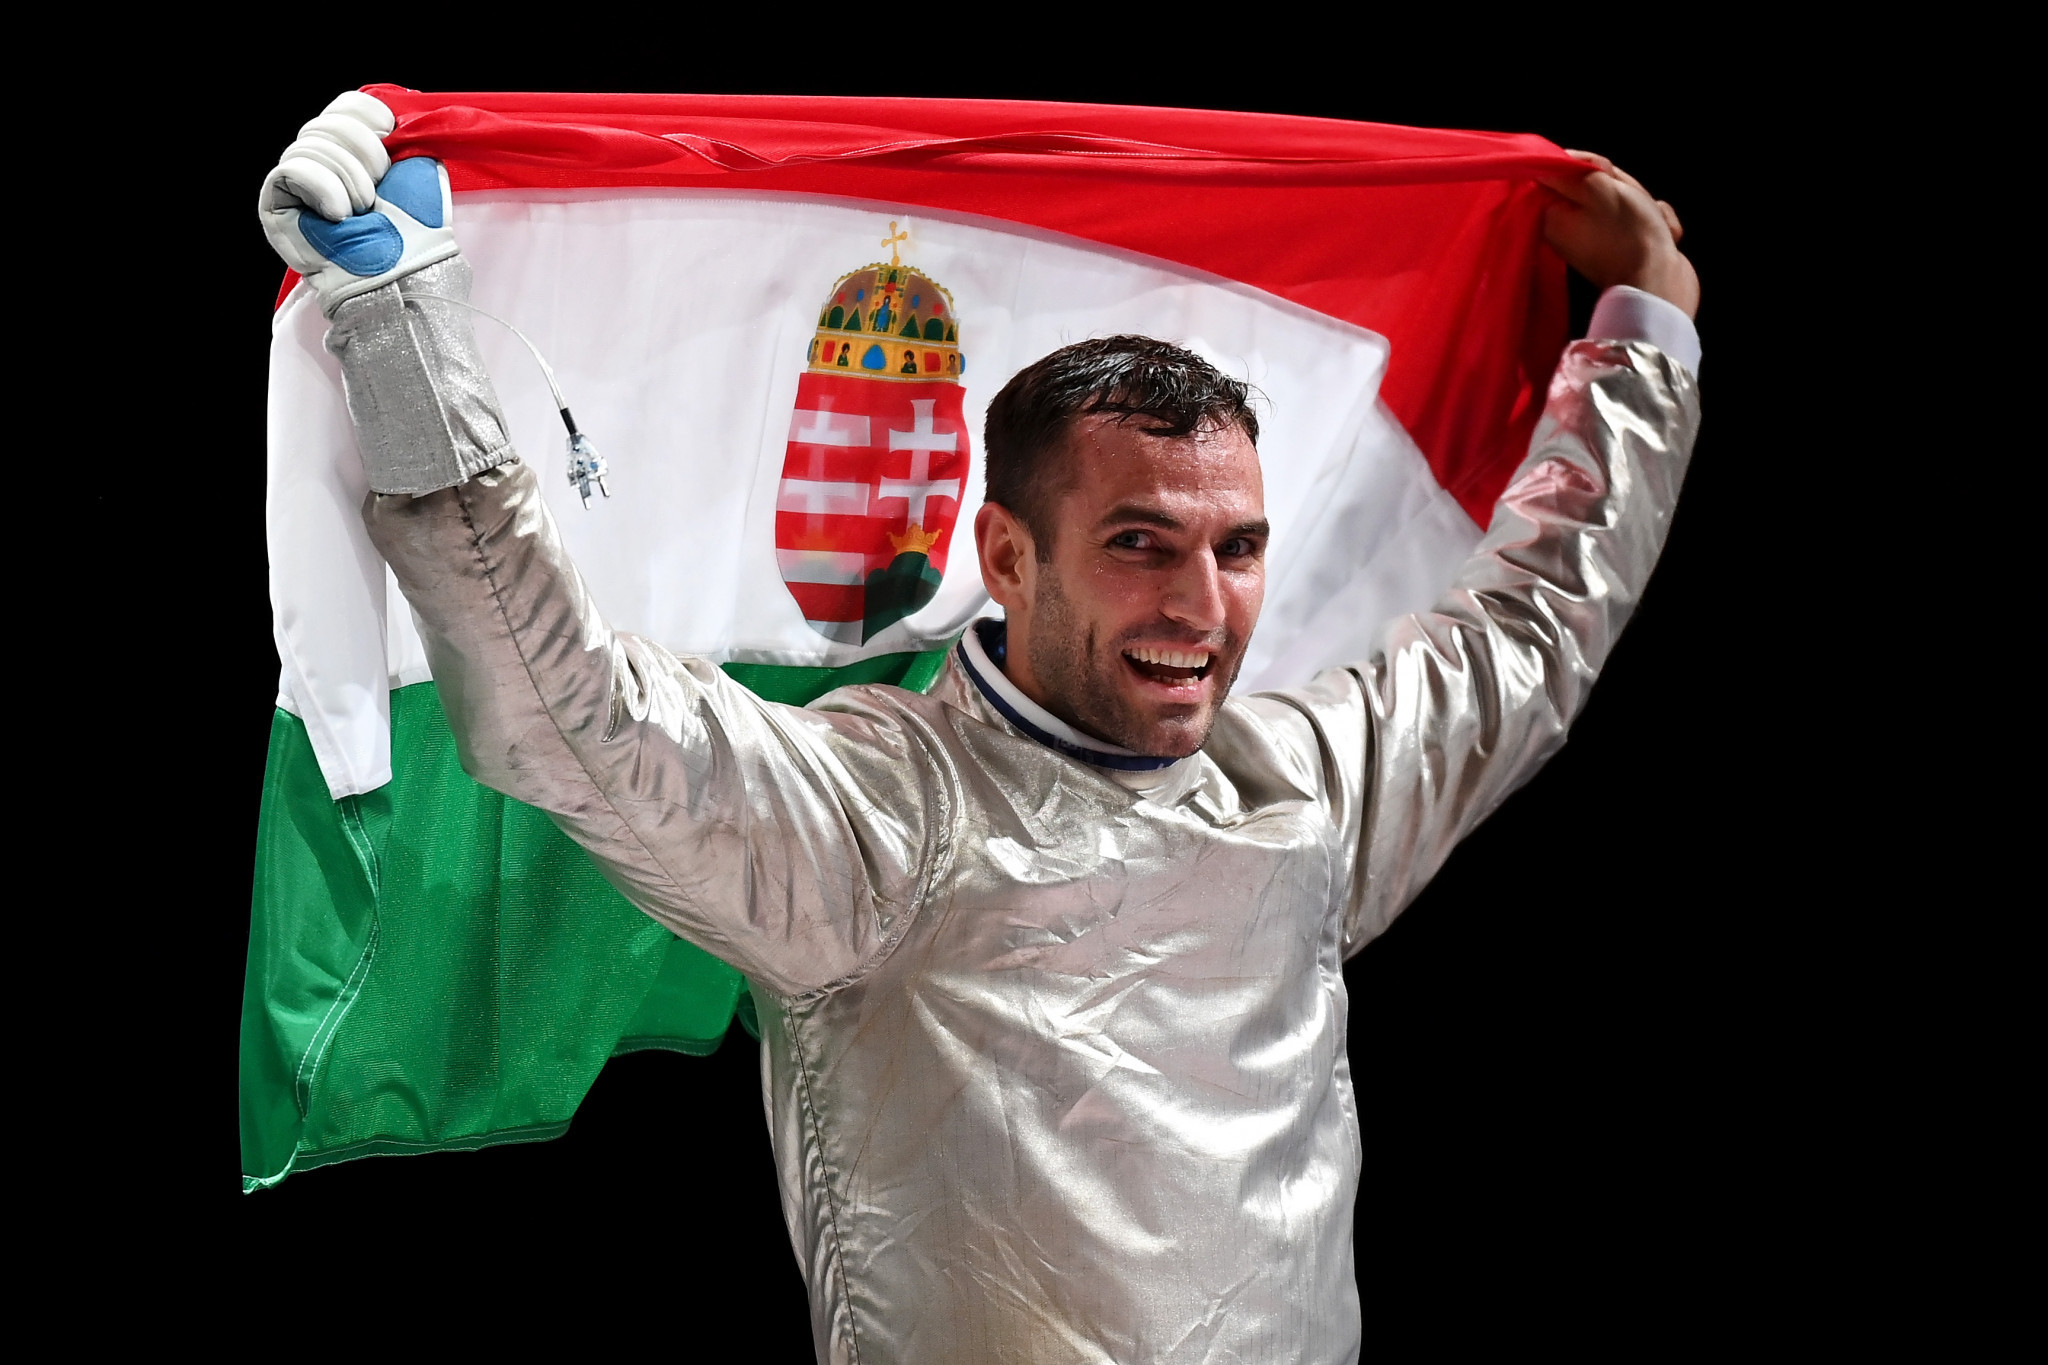 Szilágyi captures third Olympic fencing crown as Sun claims dramatic gold